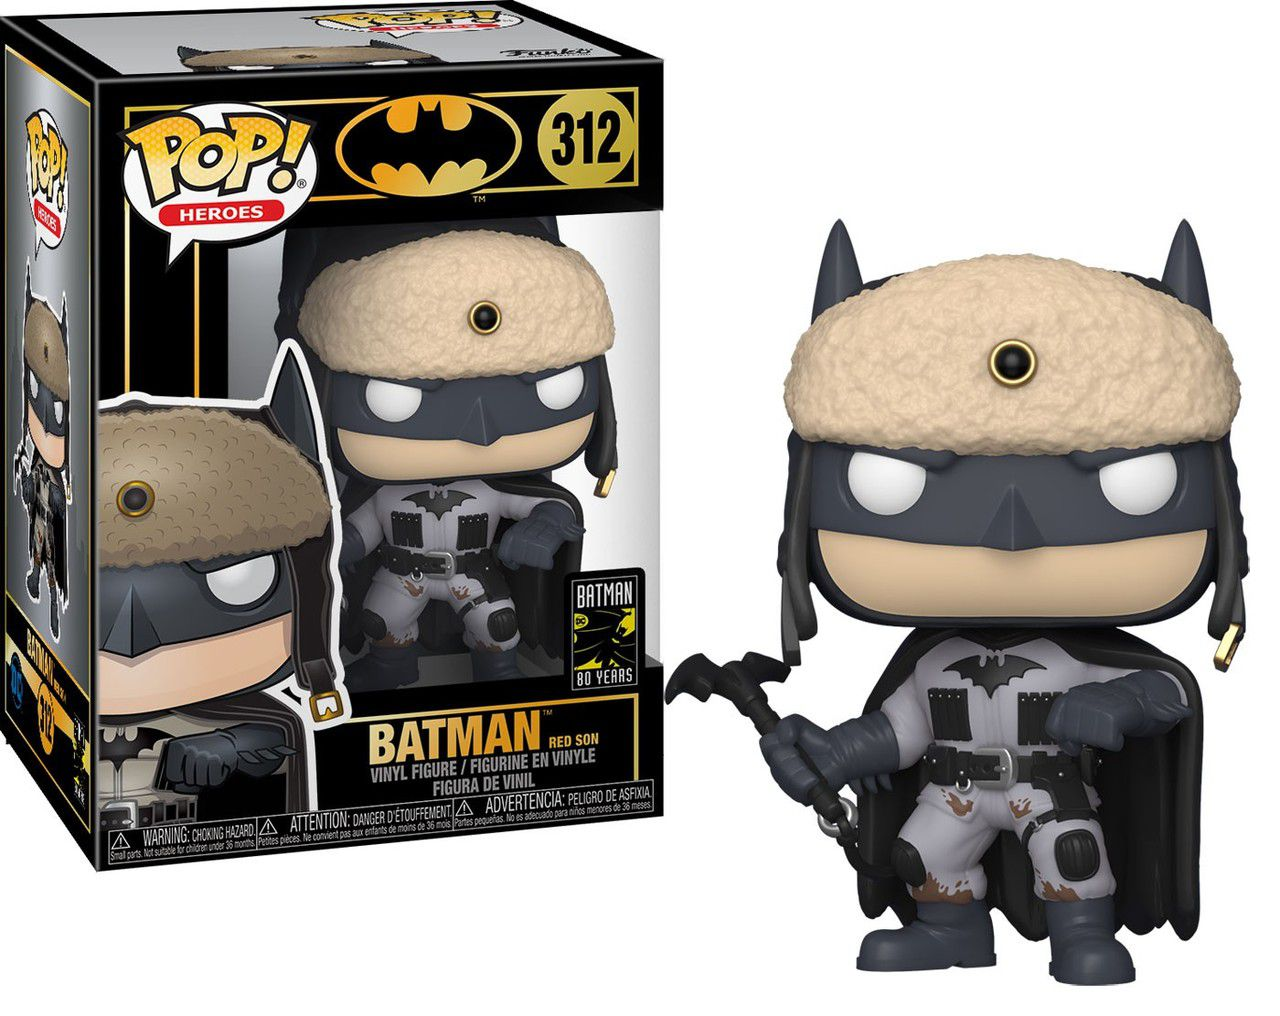 Funko Pop! Batman (Red Son): DC Comics (Batman 80th Anniversary) #312 - Funko